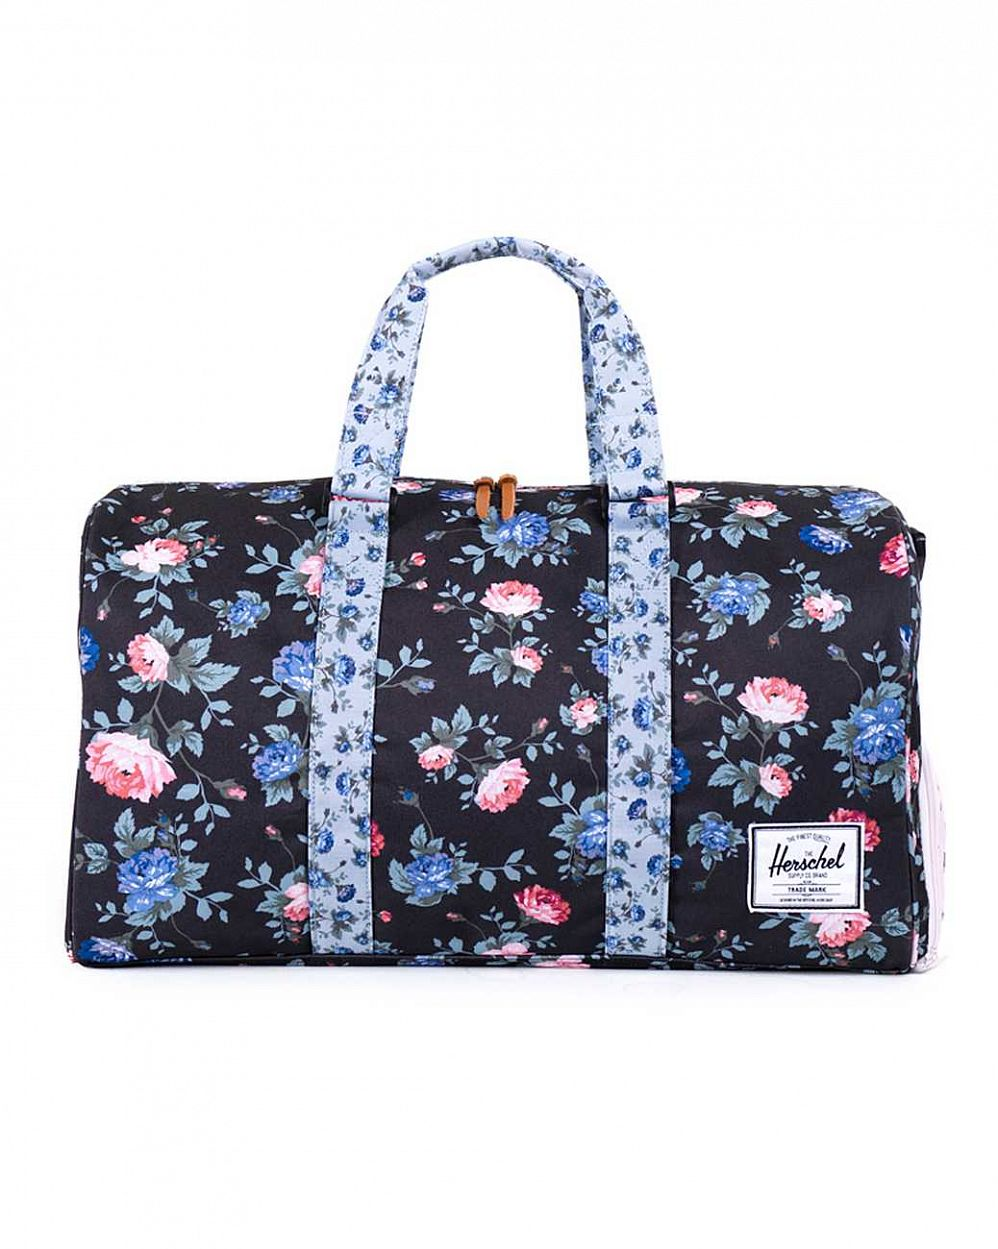 Сумка спортивная Herschel Novel Black Floral отзывы